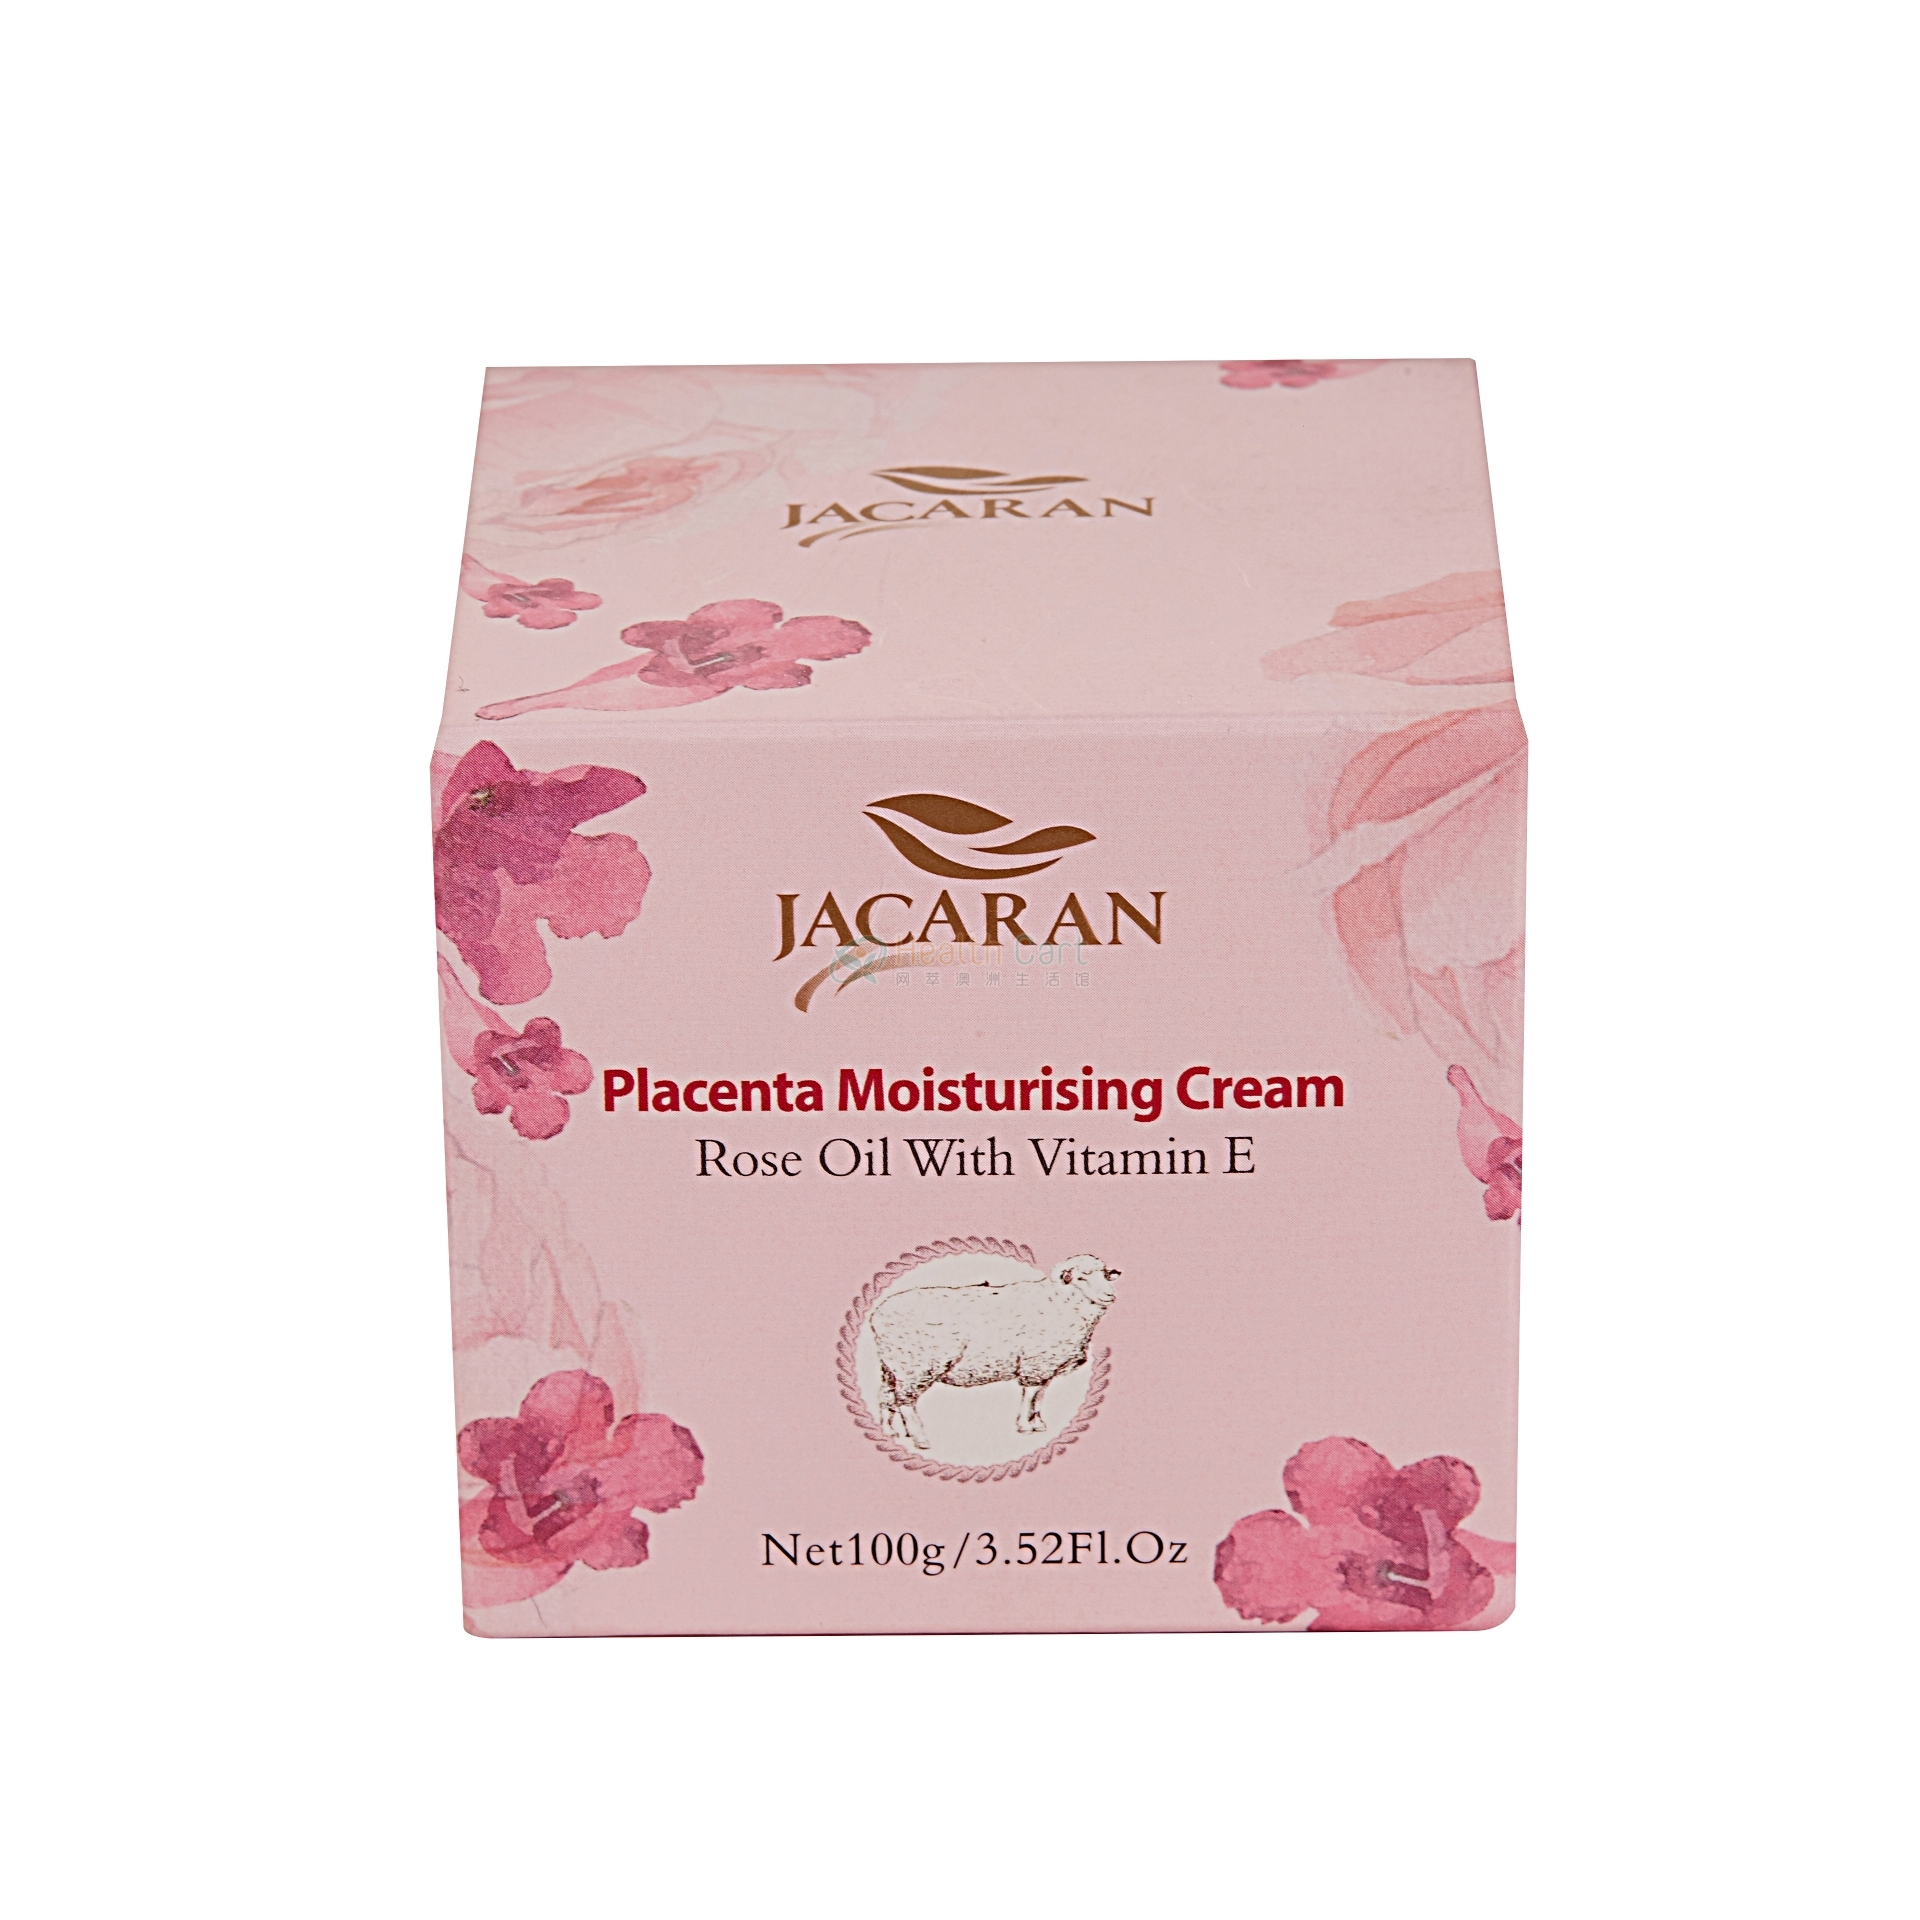 Jacaran Placenta Moisturising Cream Rose Oil with Vitamin E 100g - 100 ml rose essential oil from jakari sheep oil jacaran australia - 10    - Health Cart